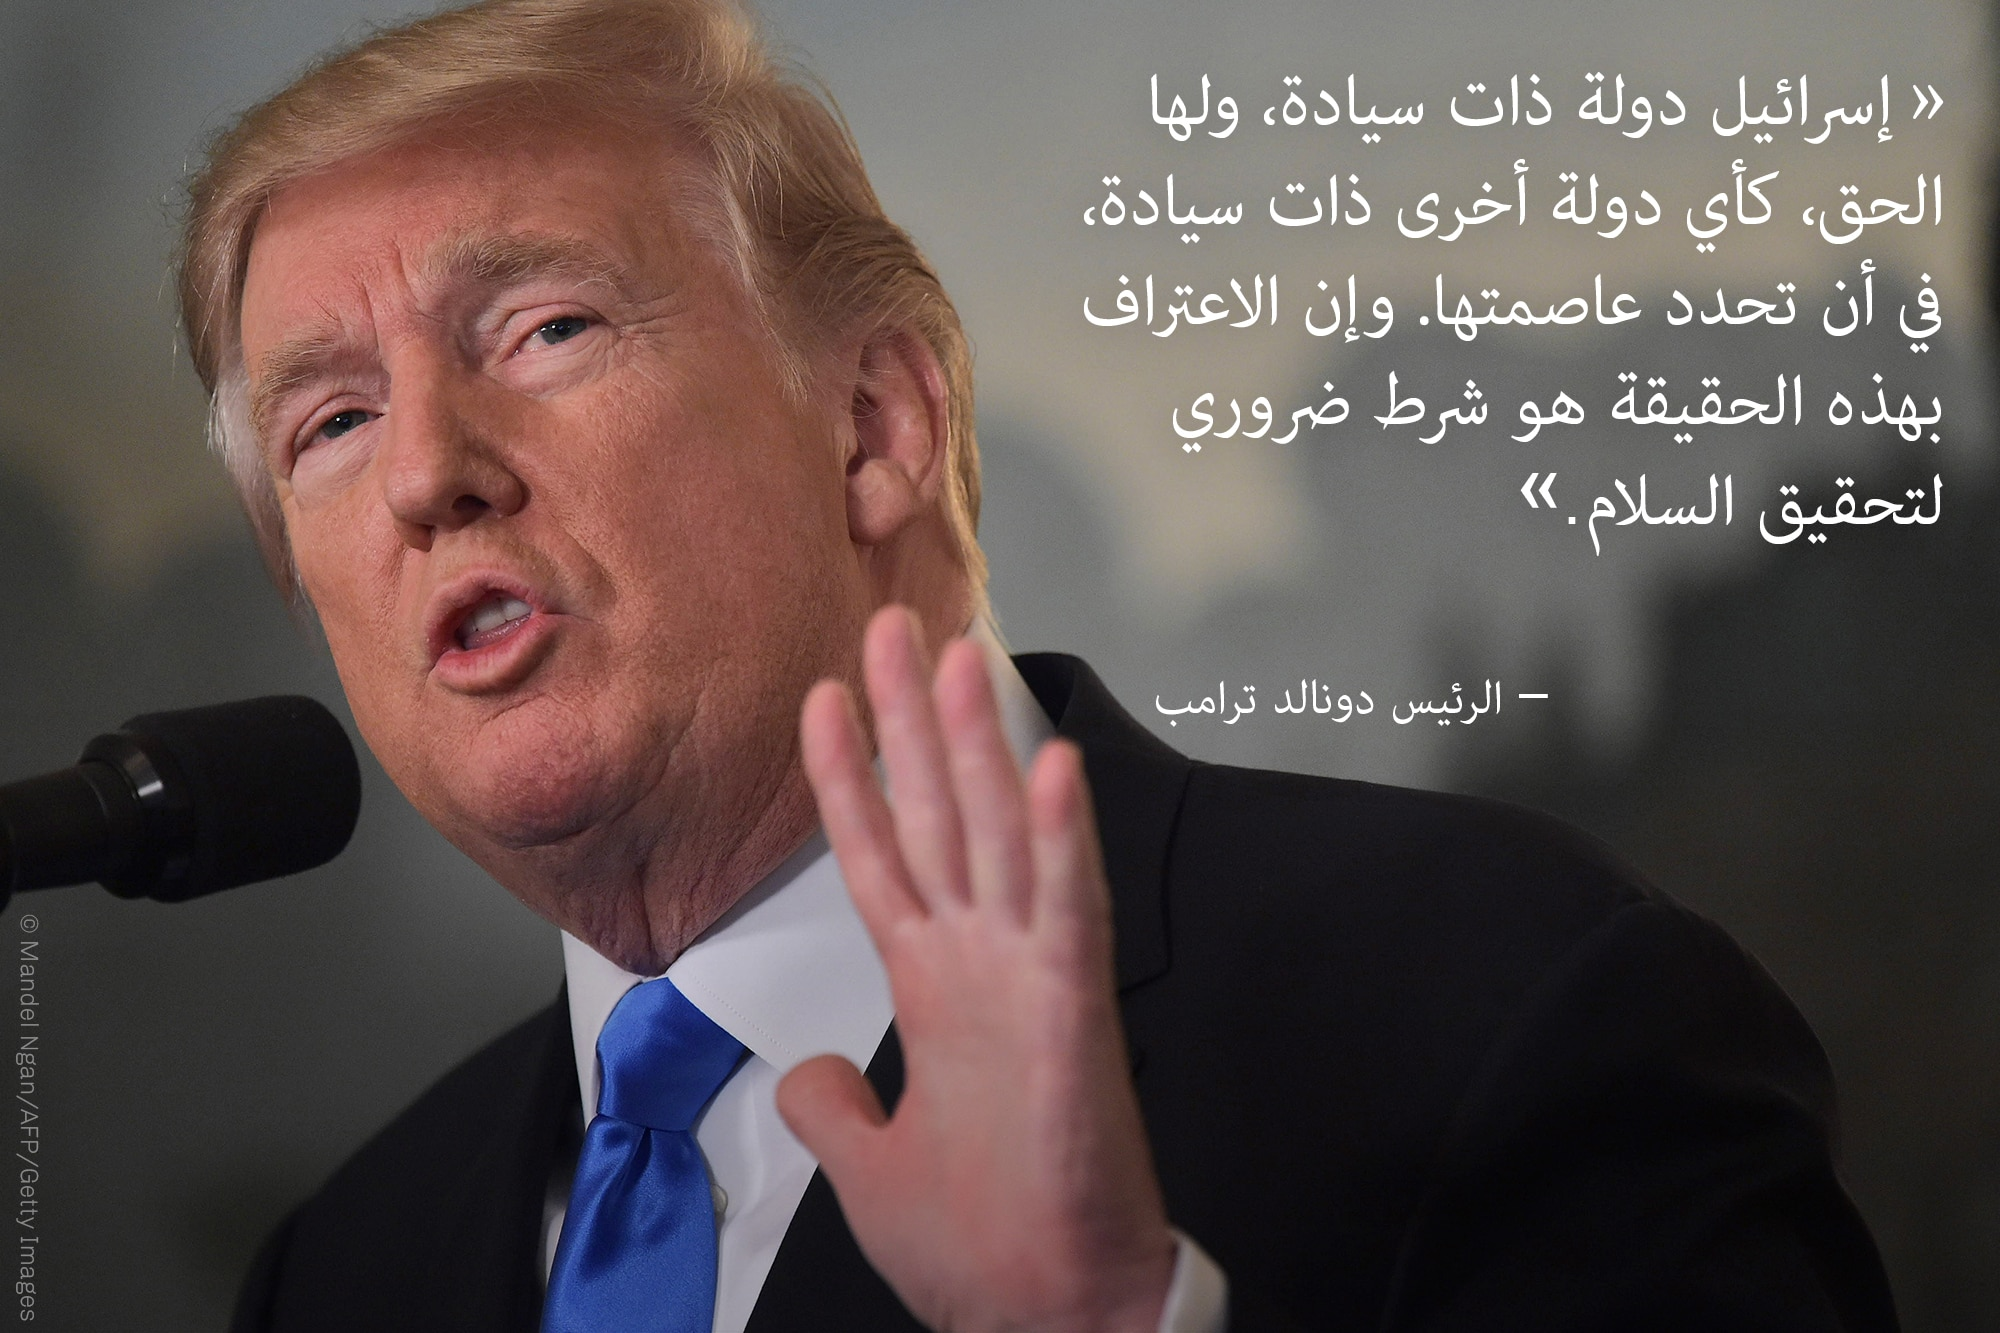 Quote from President Trump on Israel as sovereign nation, with photo of Trump (© Mandel Ngan/AFP/Getty Images)